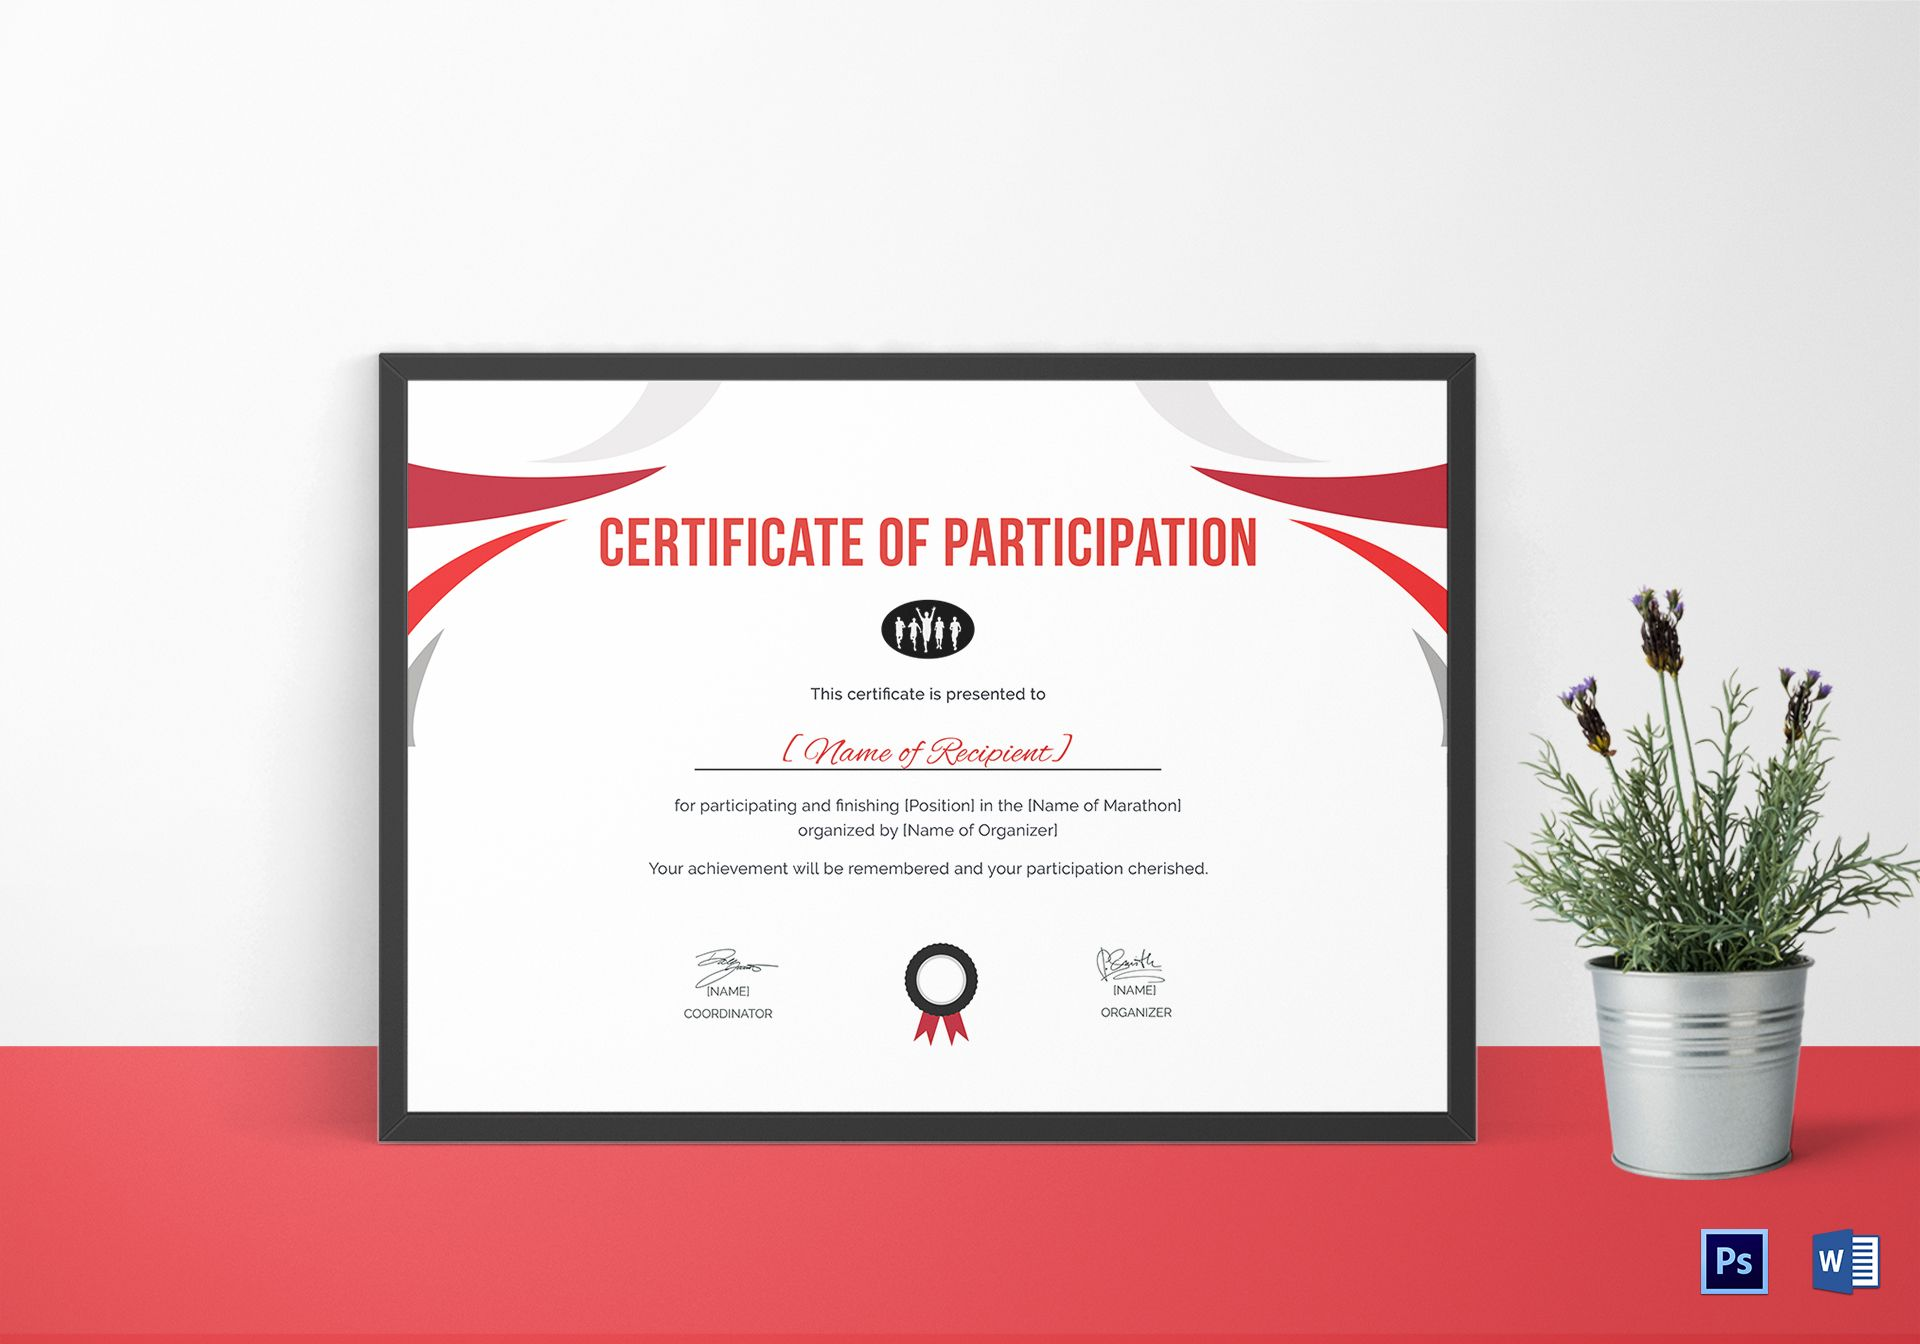 Participation Certificate of Running